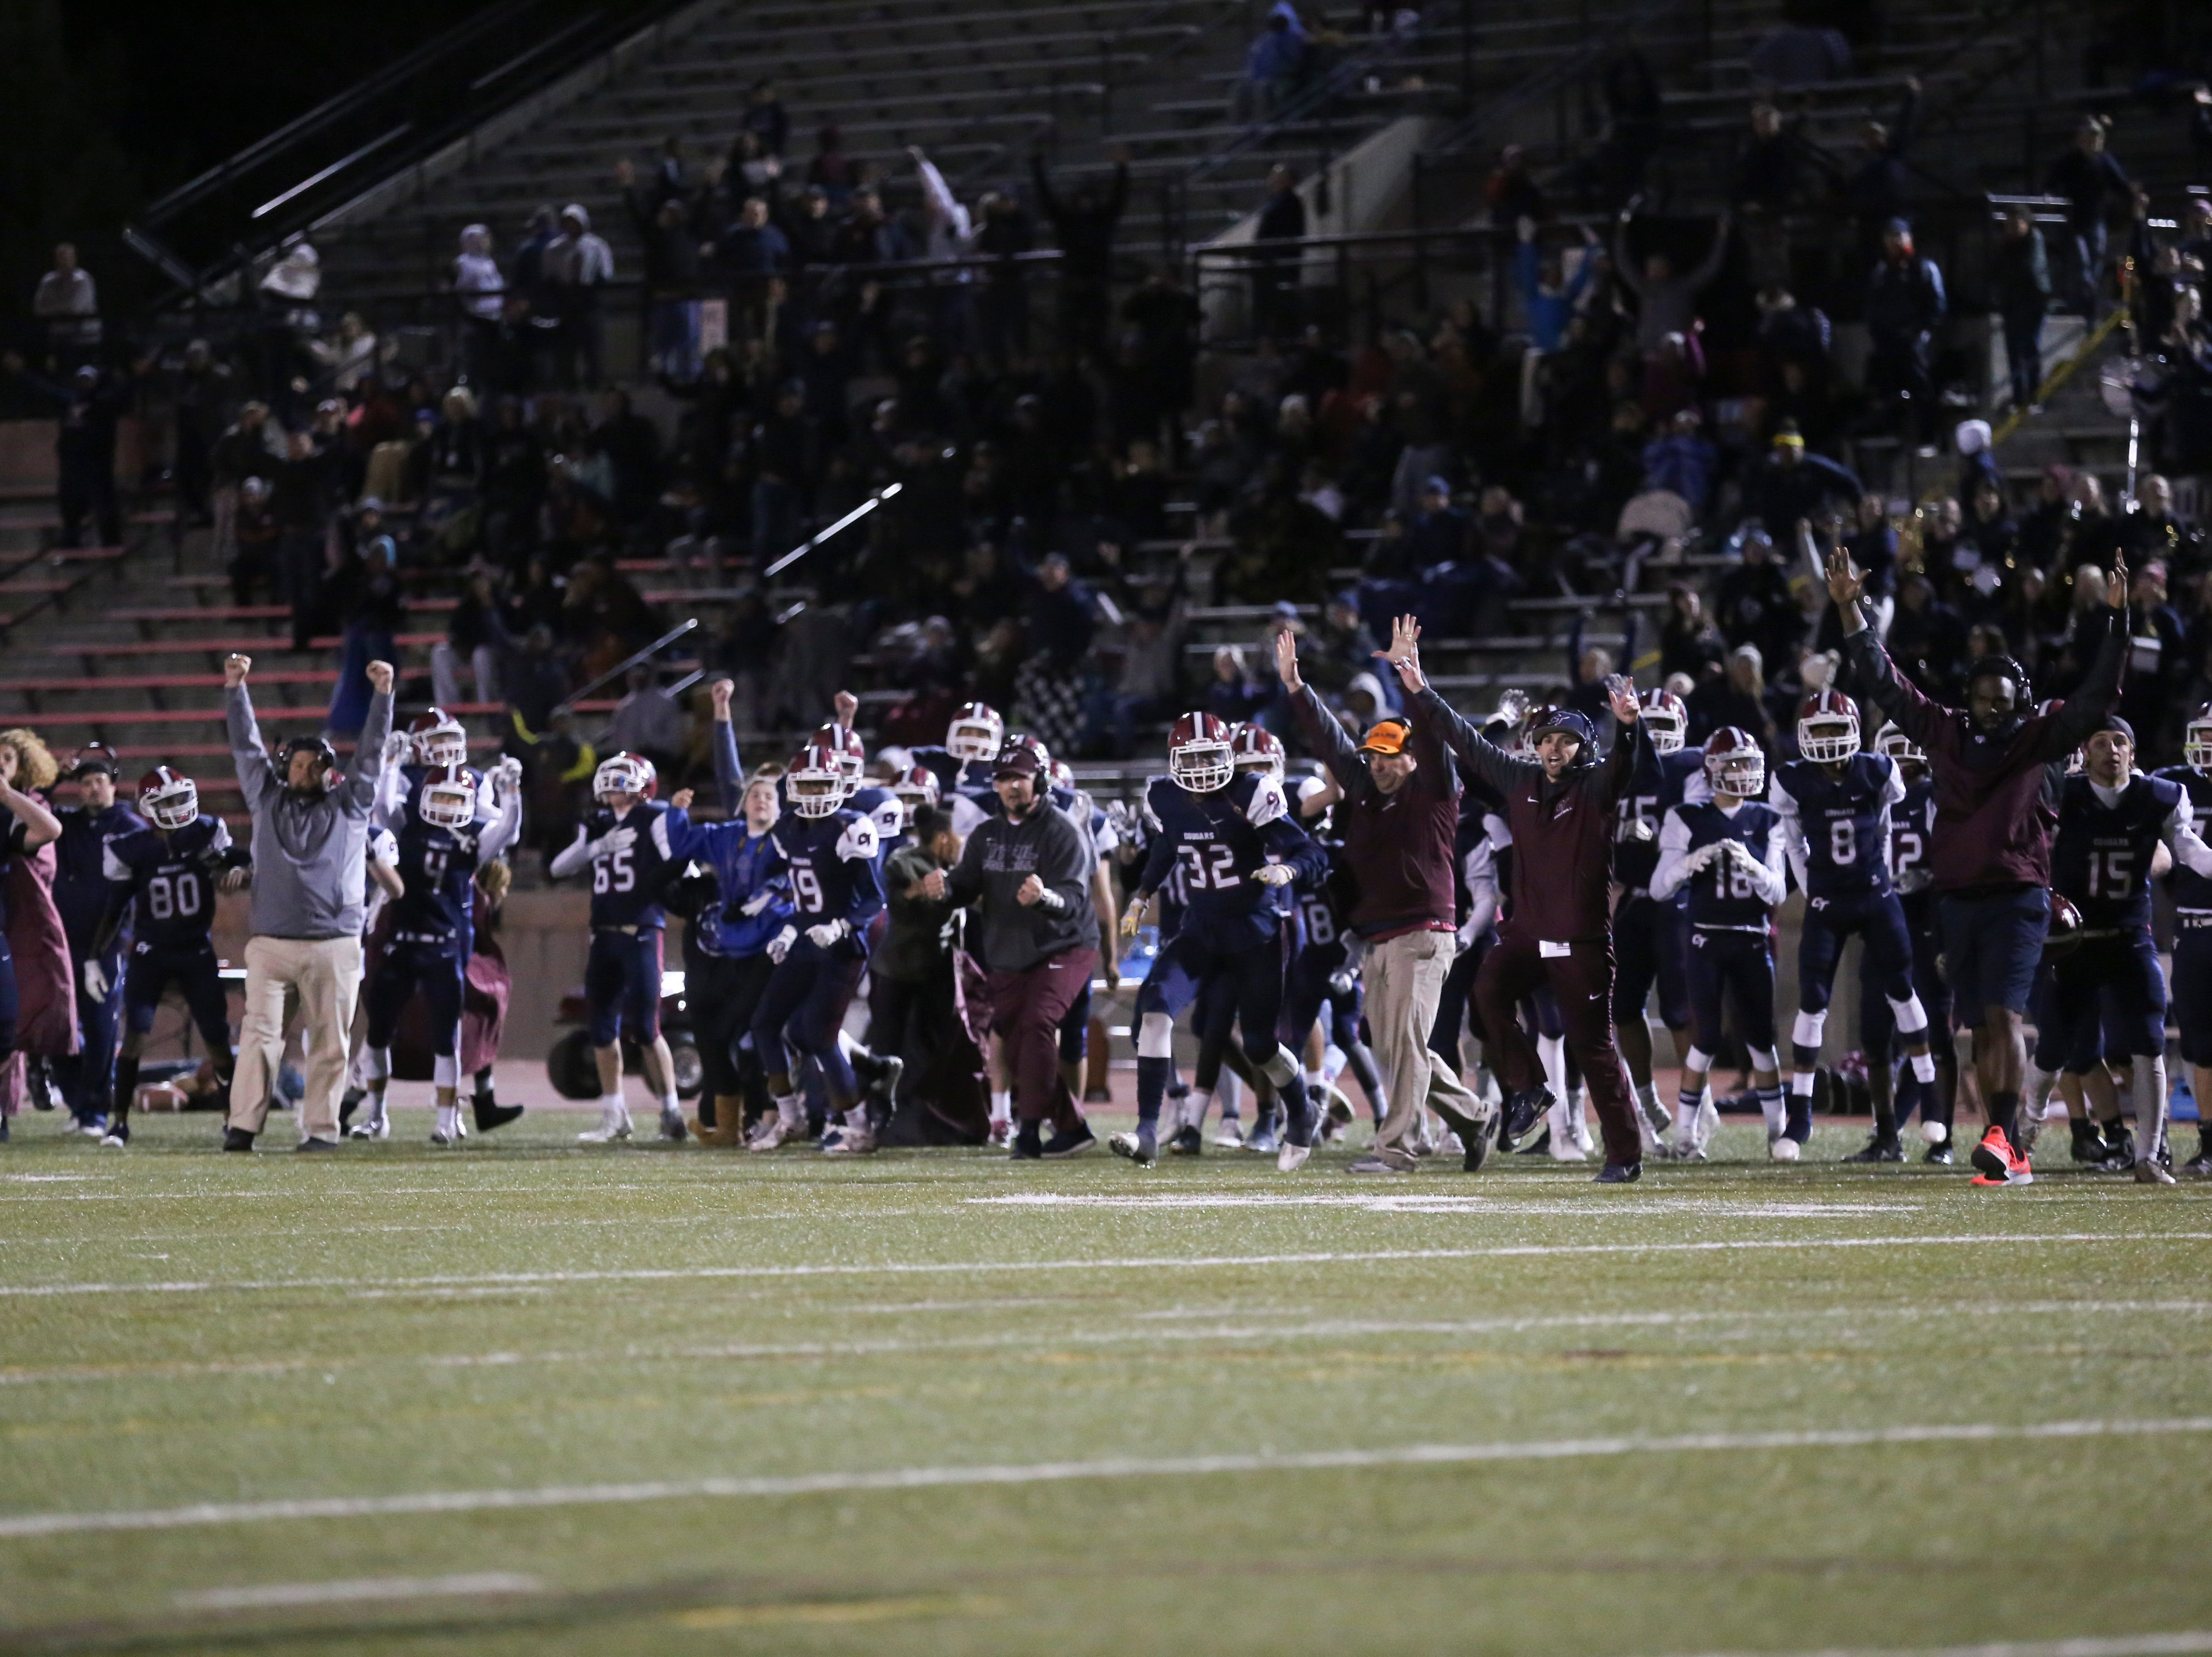 Cherokee Trail High School celebrates after defeating Poudre High School in a double overtime playoff game on Friday evening.